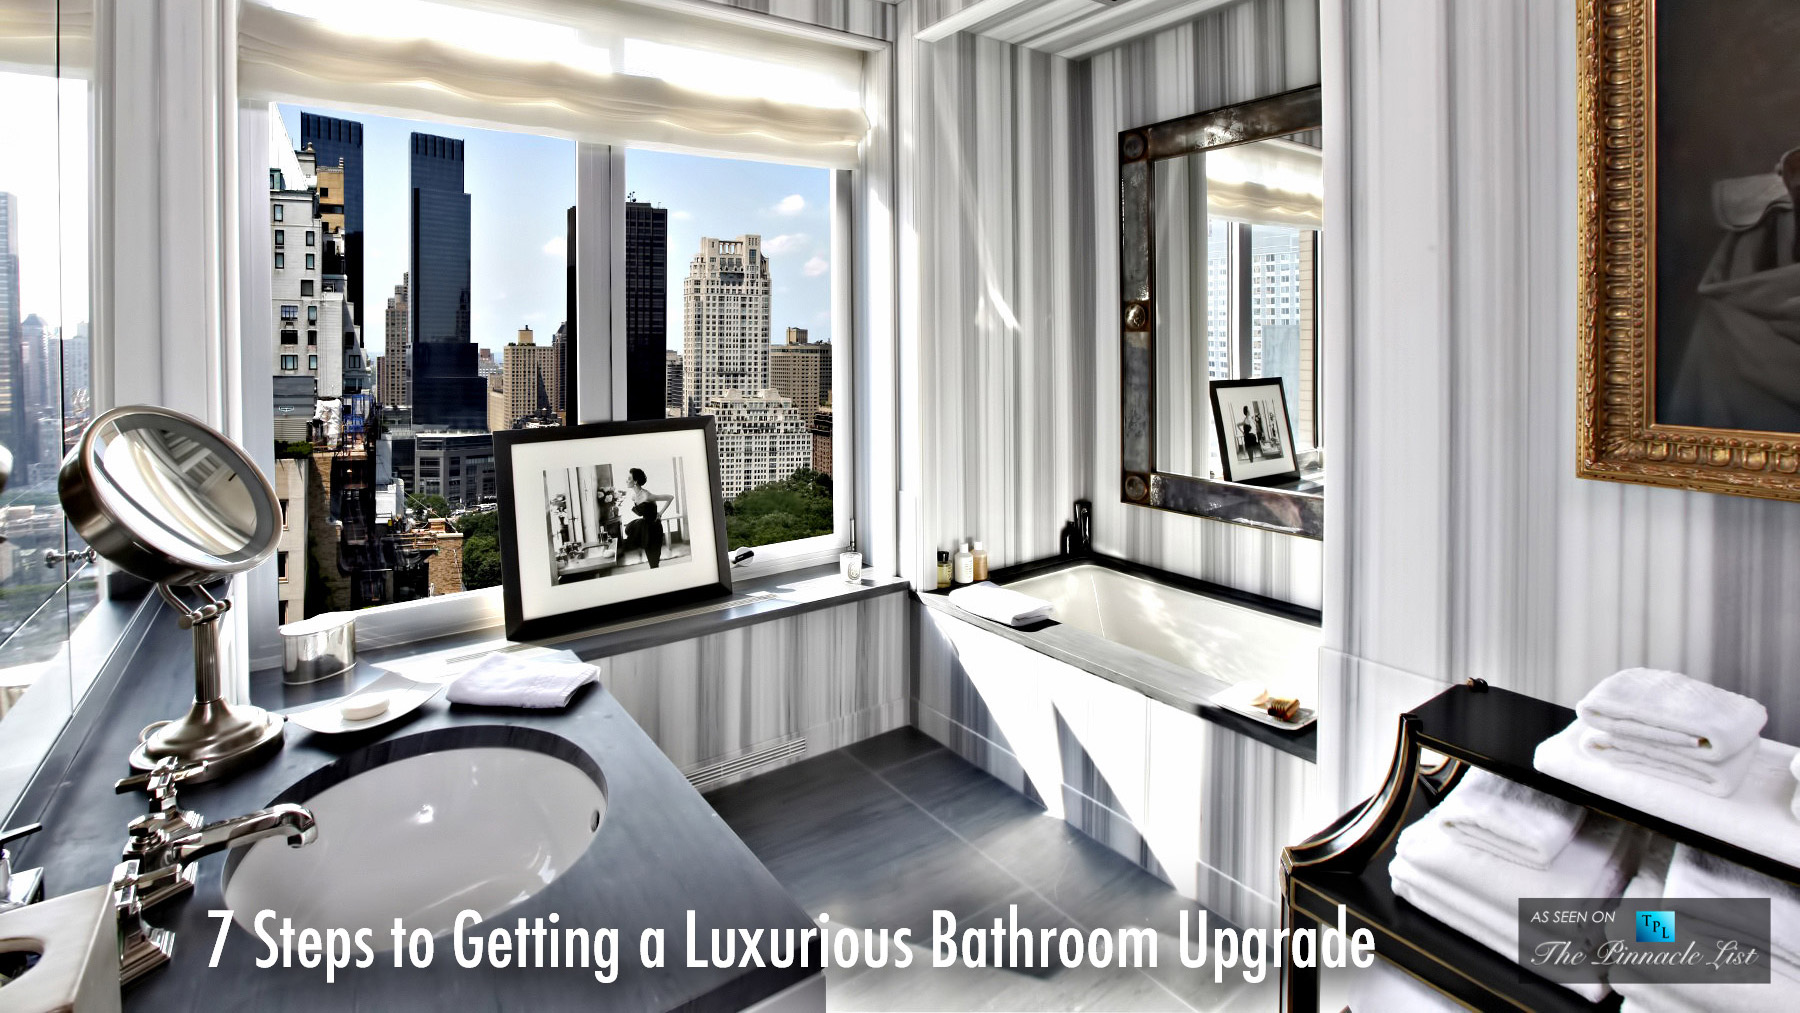 7 Steps To Getting A Luxurious Bathroom Upgrade The Pinnacle List